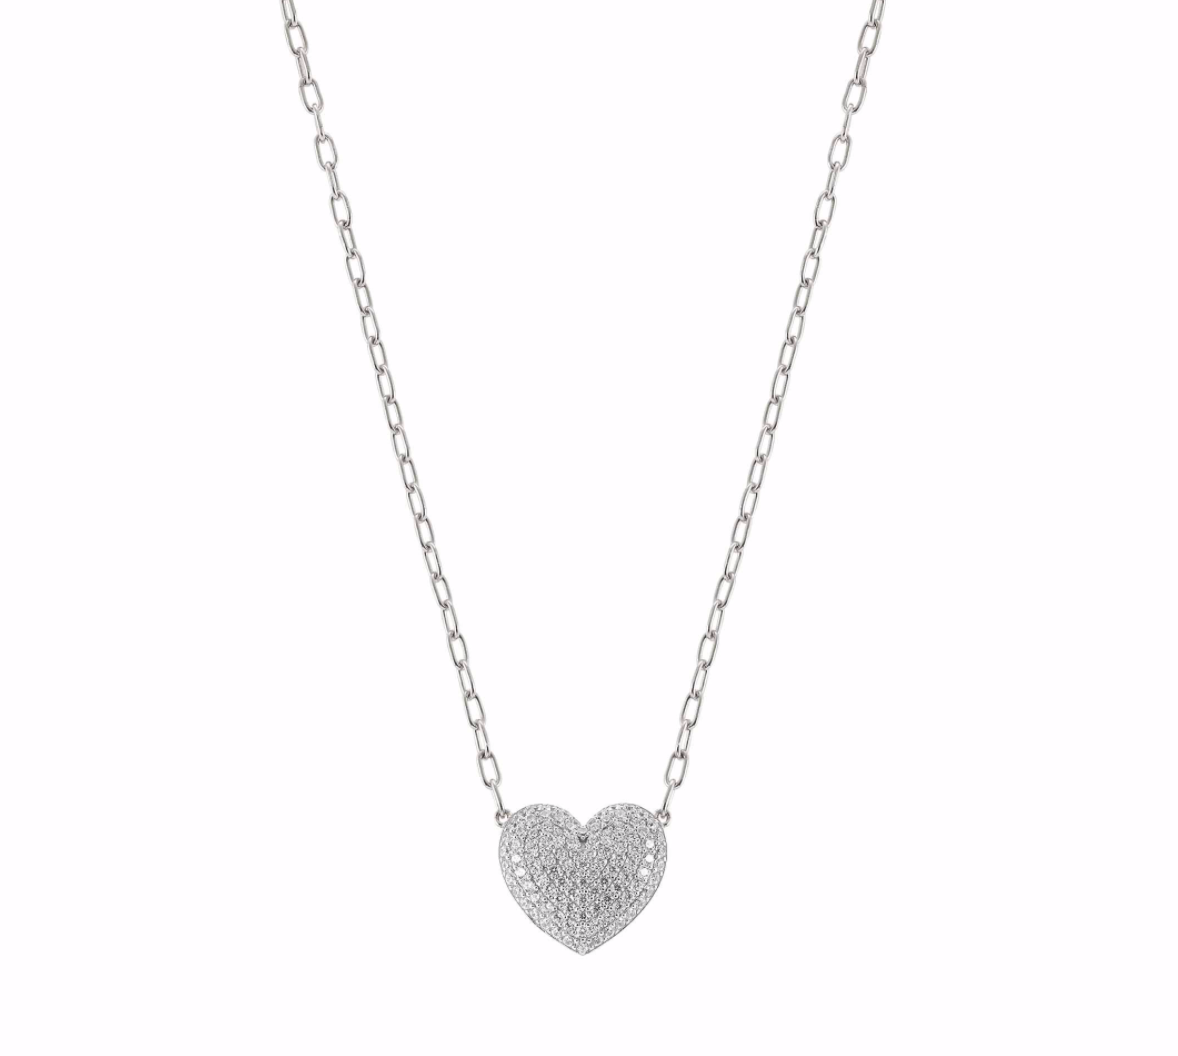 Nomination Easychic Heart CZ Necklace